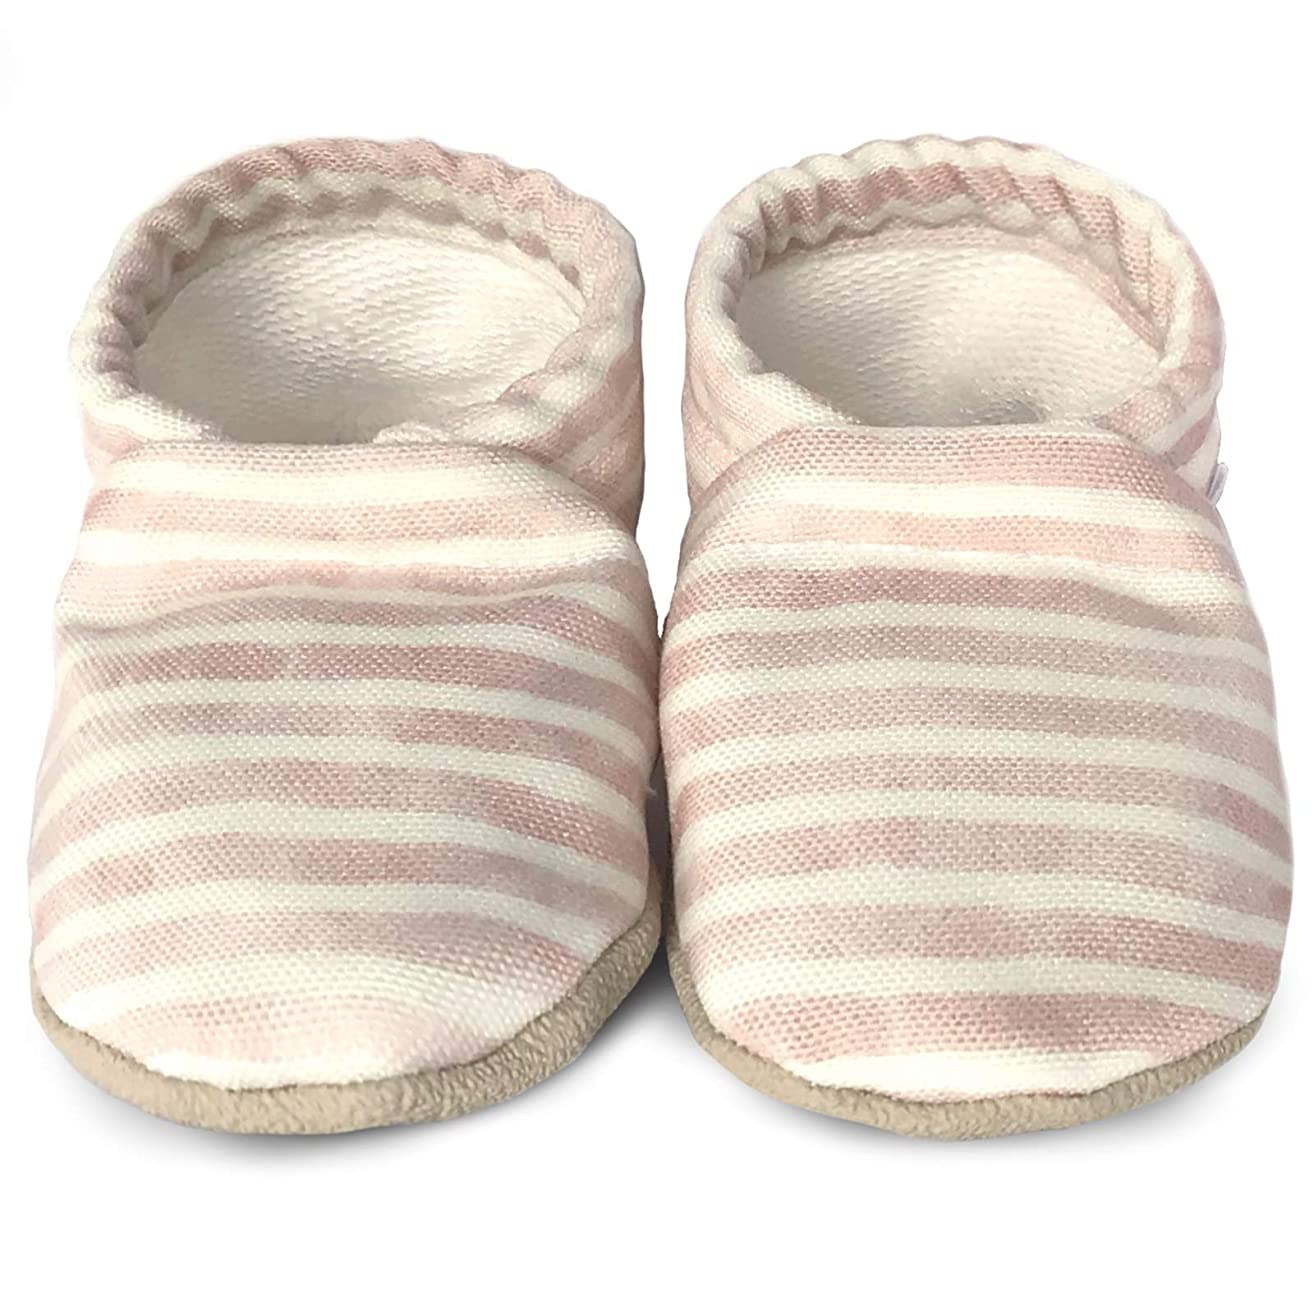 Organic soft soled baby shoes, EVERYLY